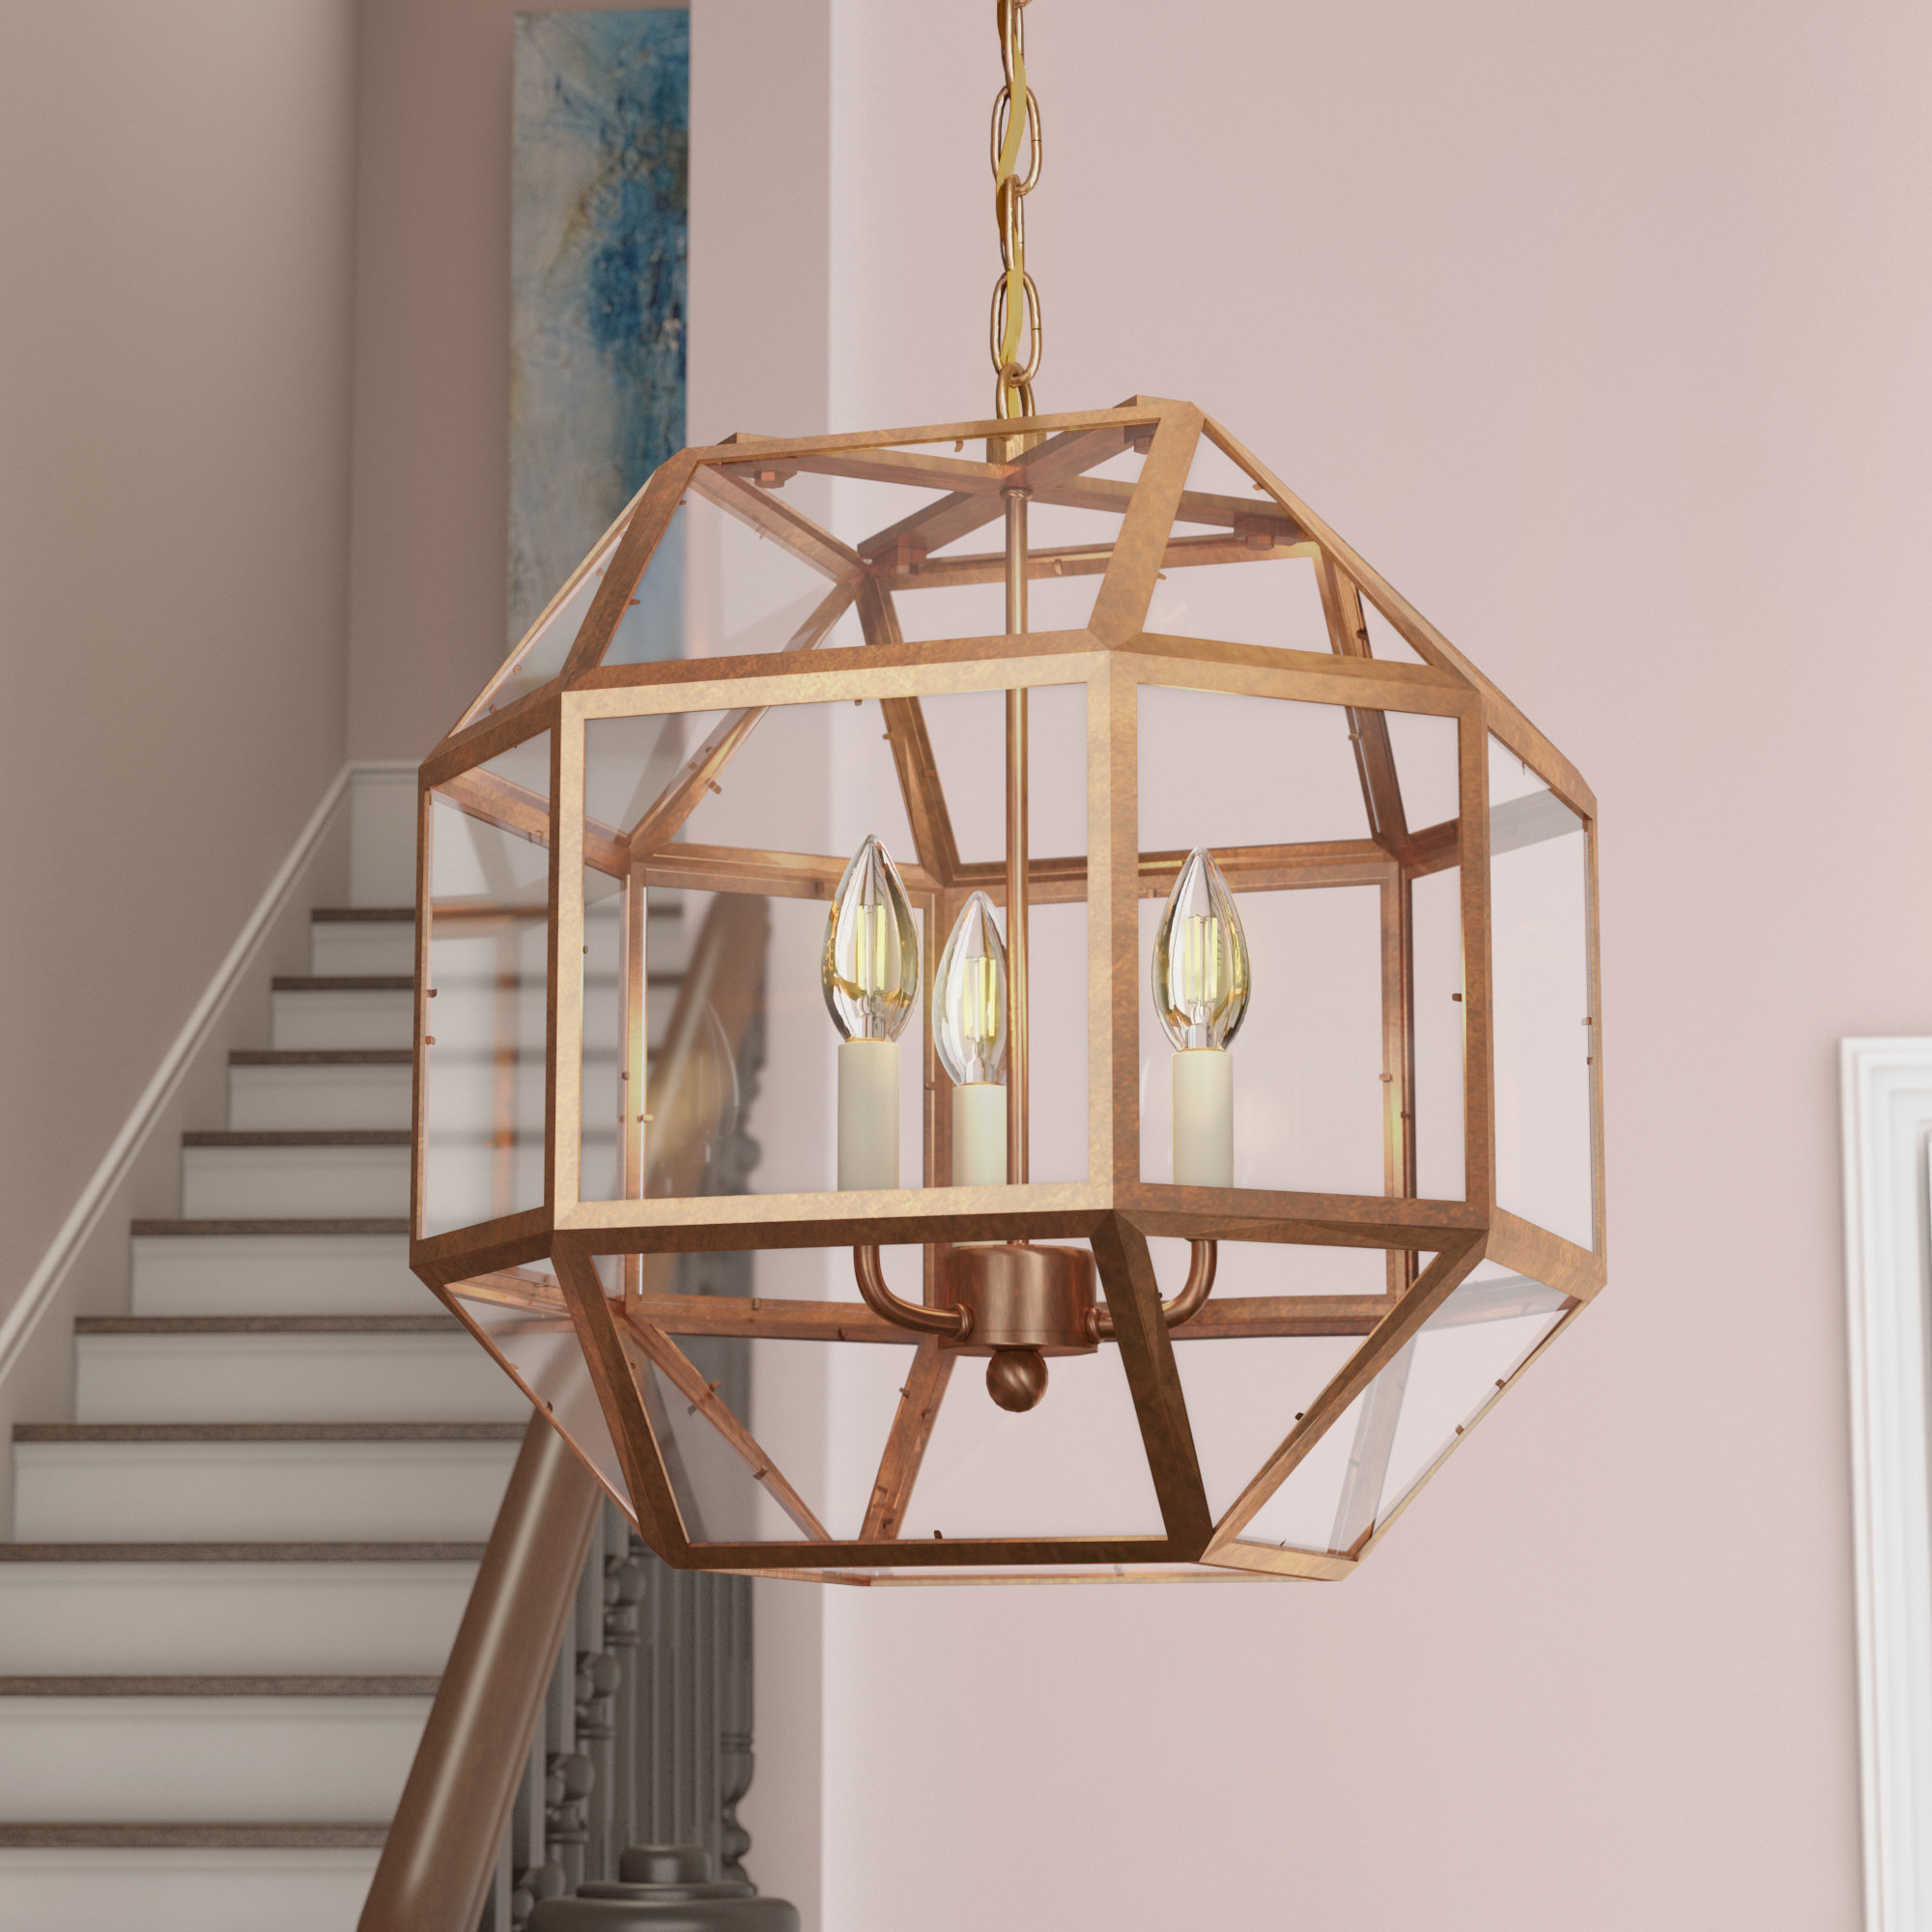 [%Geometric Chandeliers Sale – Up To 65% Off Until September Intended For Favorite Cavanagh 4 Light Geometric Chandeliers|Cavanagh 4 Light Geometric Chandeliers Inside Newest Geometric Chandeliers Sale – Up To 65% Off Until September|Most Current Cavanagh 4 Light Geometric Chandeliers Intended For Geometric Chandeliers Sale – Up To 65% Off Until September|Most Current Geometric Chandeliers Sale – Up To 65% Off Until September In Cavanagh 4 Light Geometric Chandeliers%] (View 24 of 25)